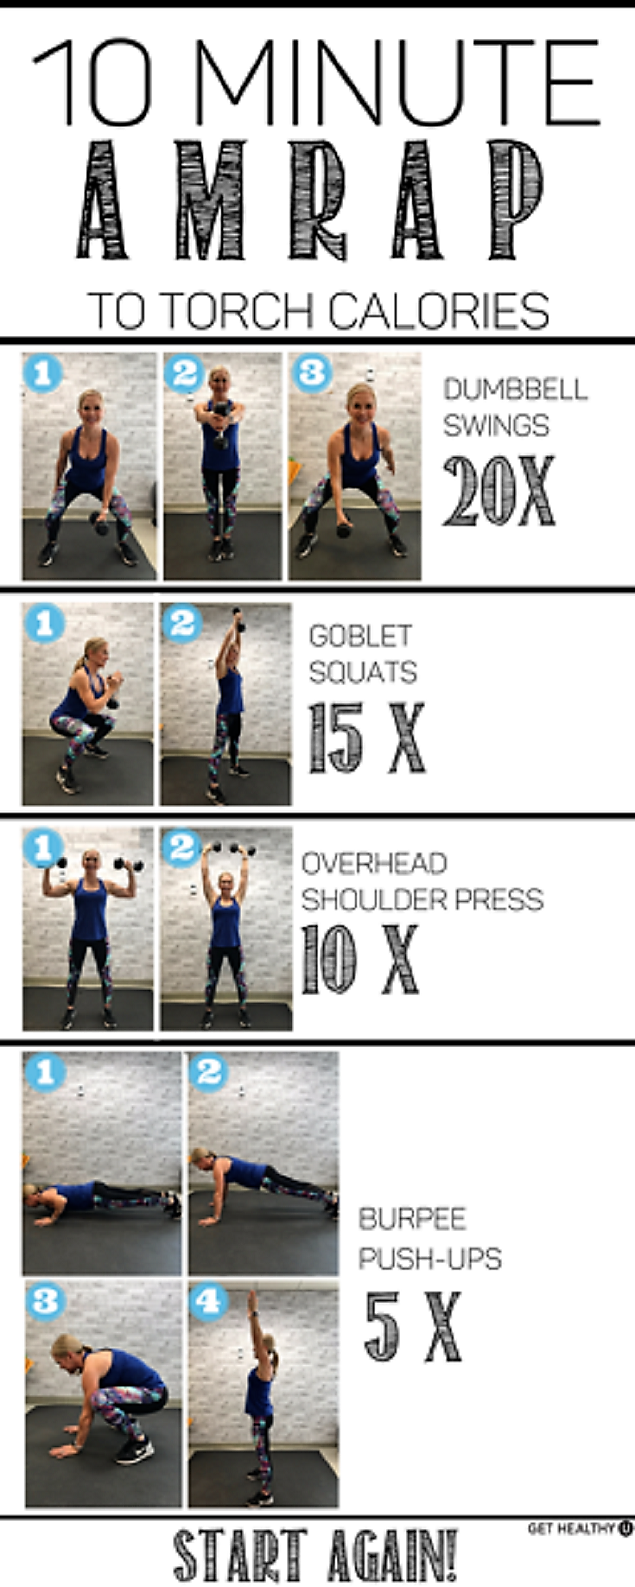 10 Minute Amrap Workout To Torch Calories Exercise By Exercise Photo Guide Amrap Workout Bodyweight Workout Workout Moves